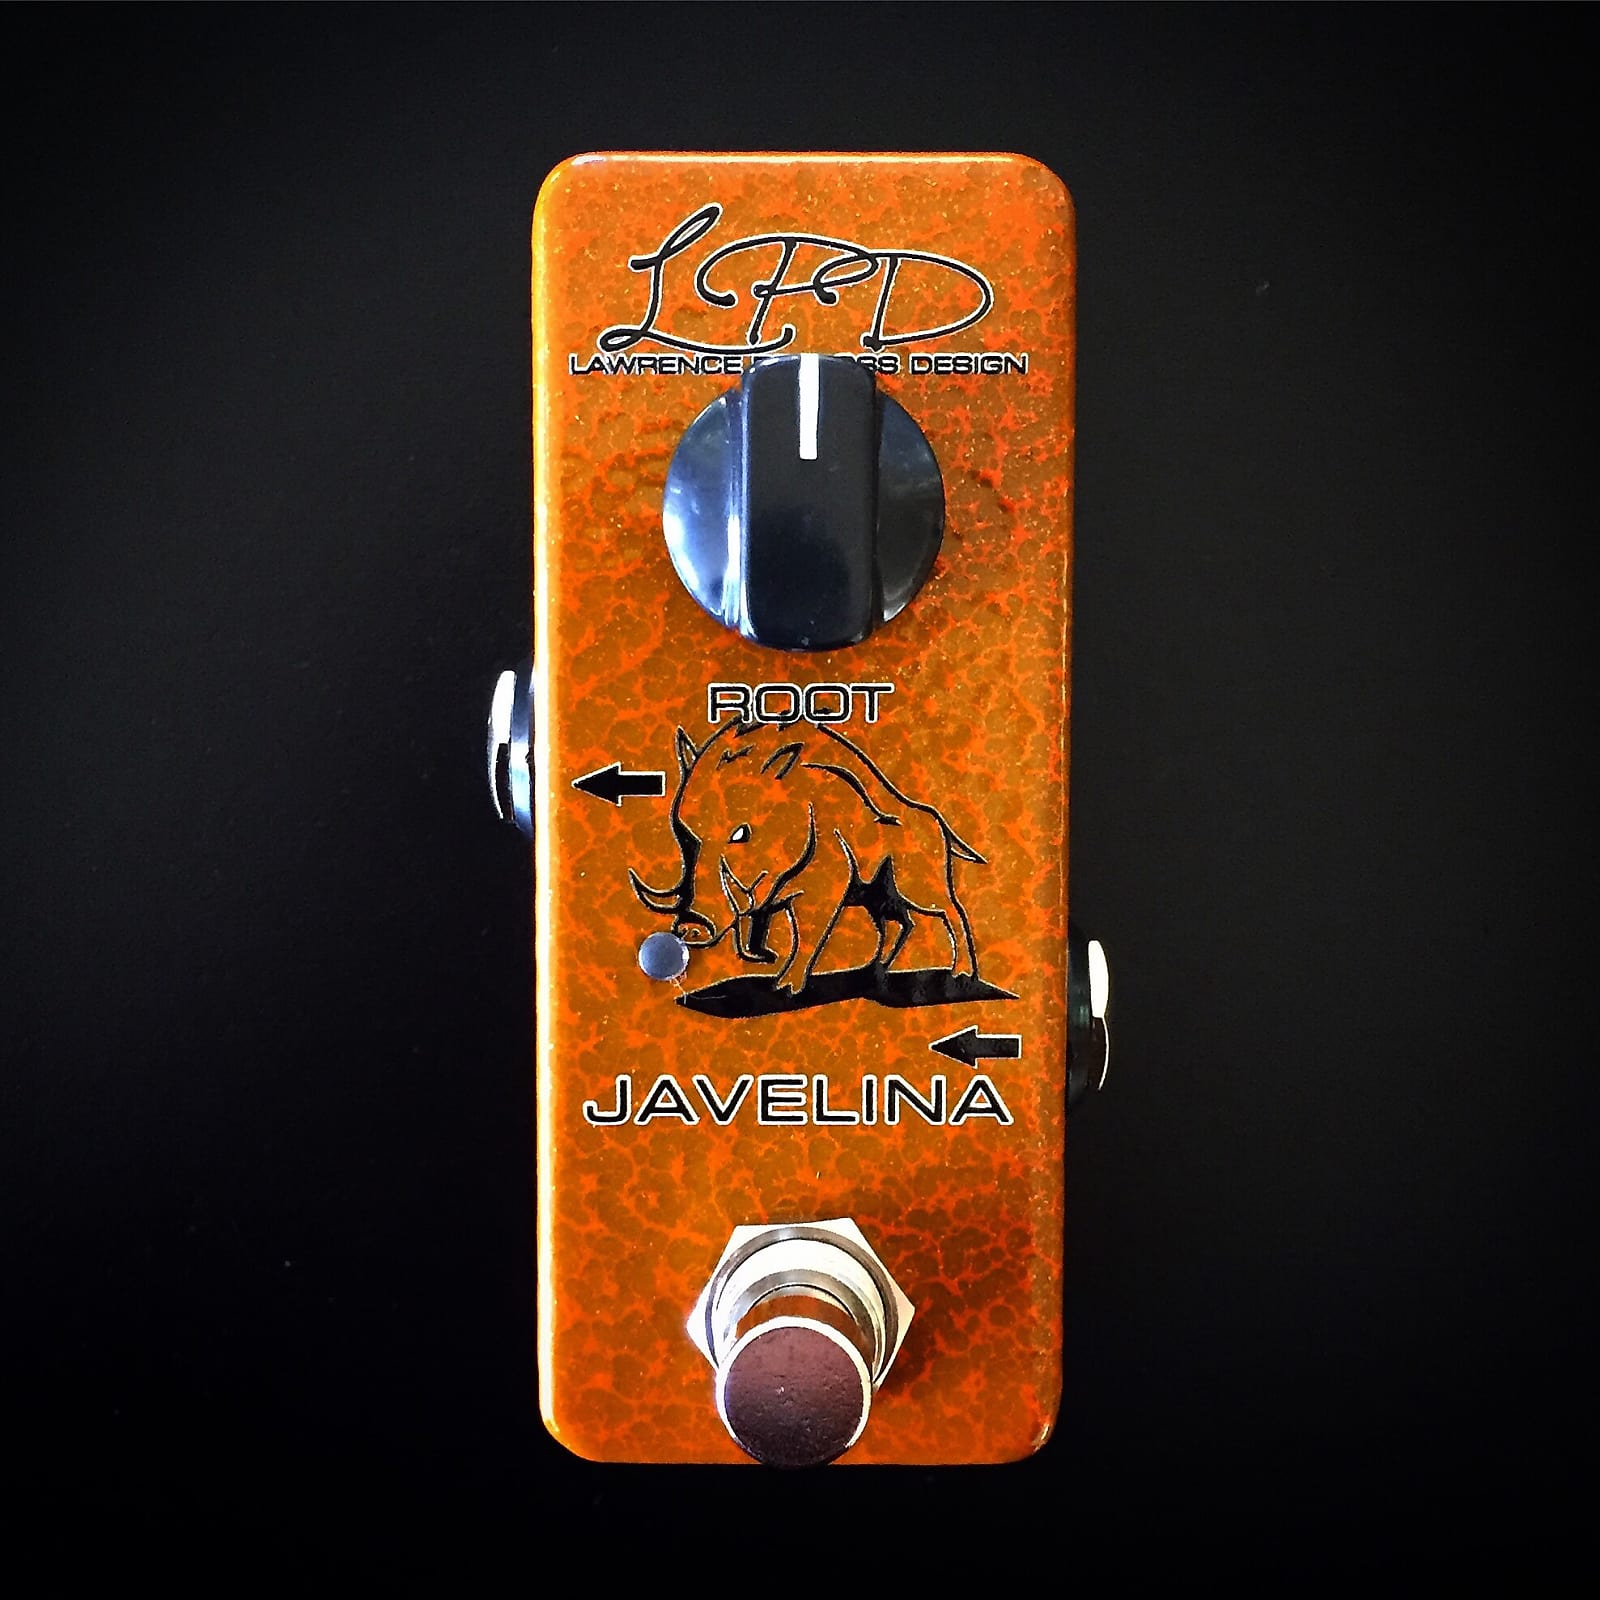 Lawrence Petross Design (LPD) Javelina Overdrive Boost